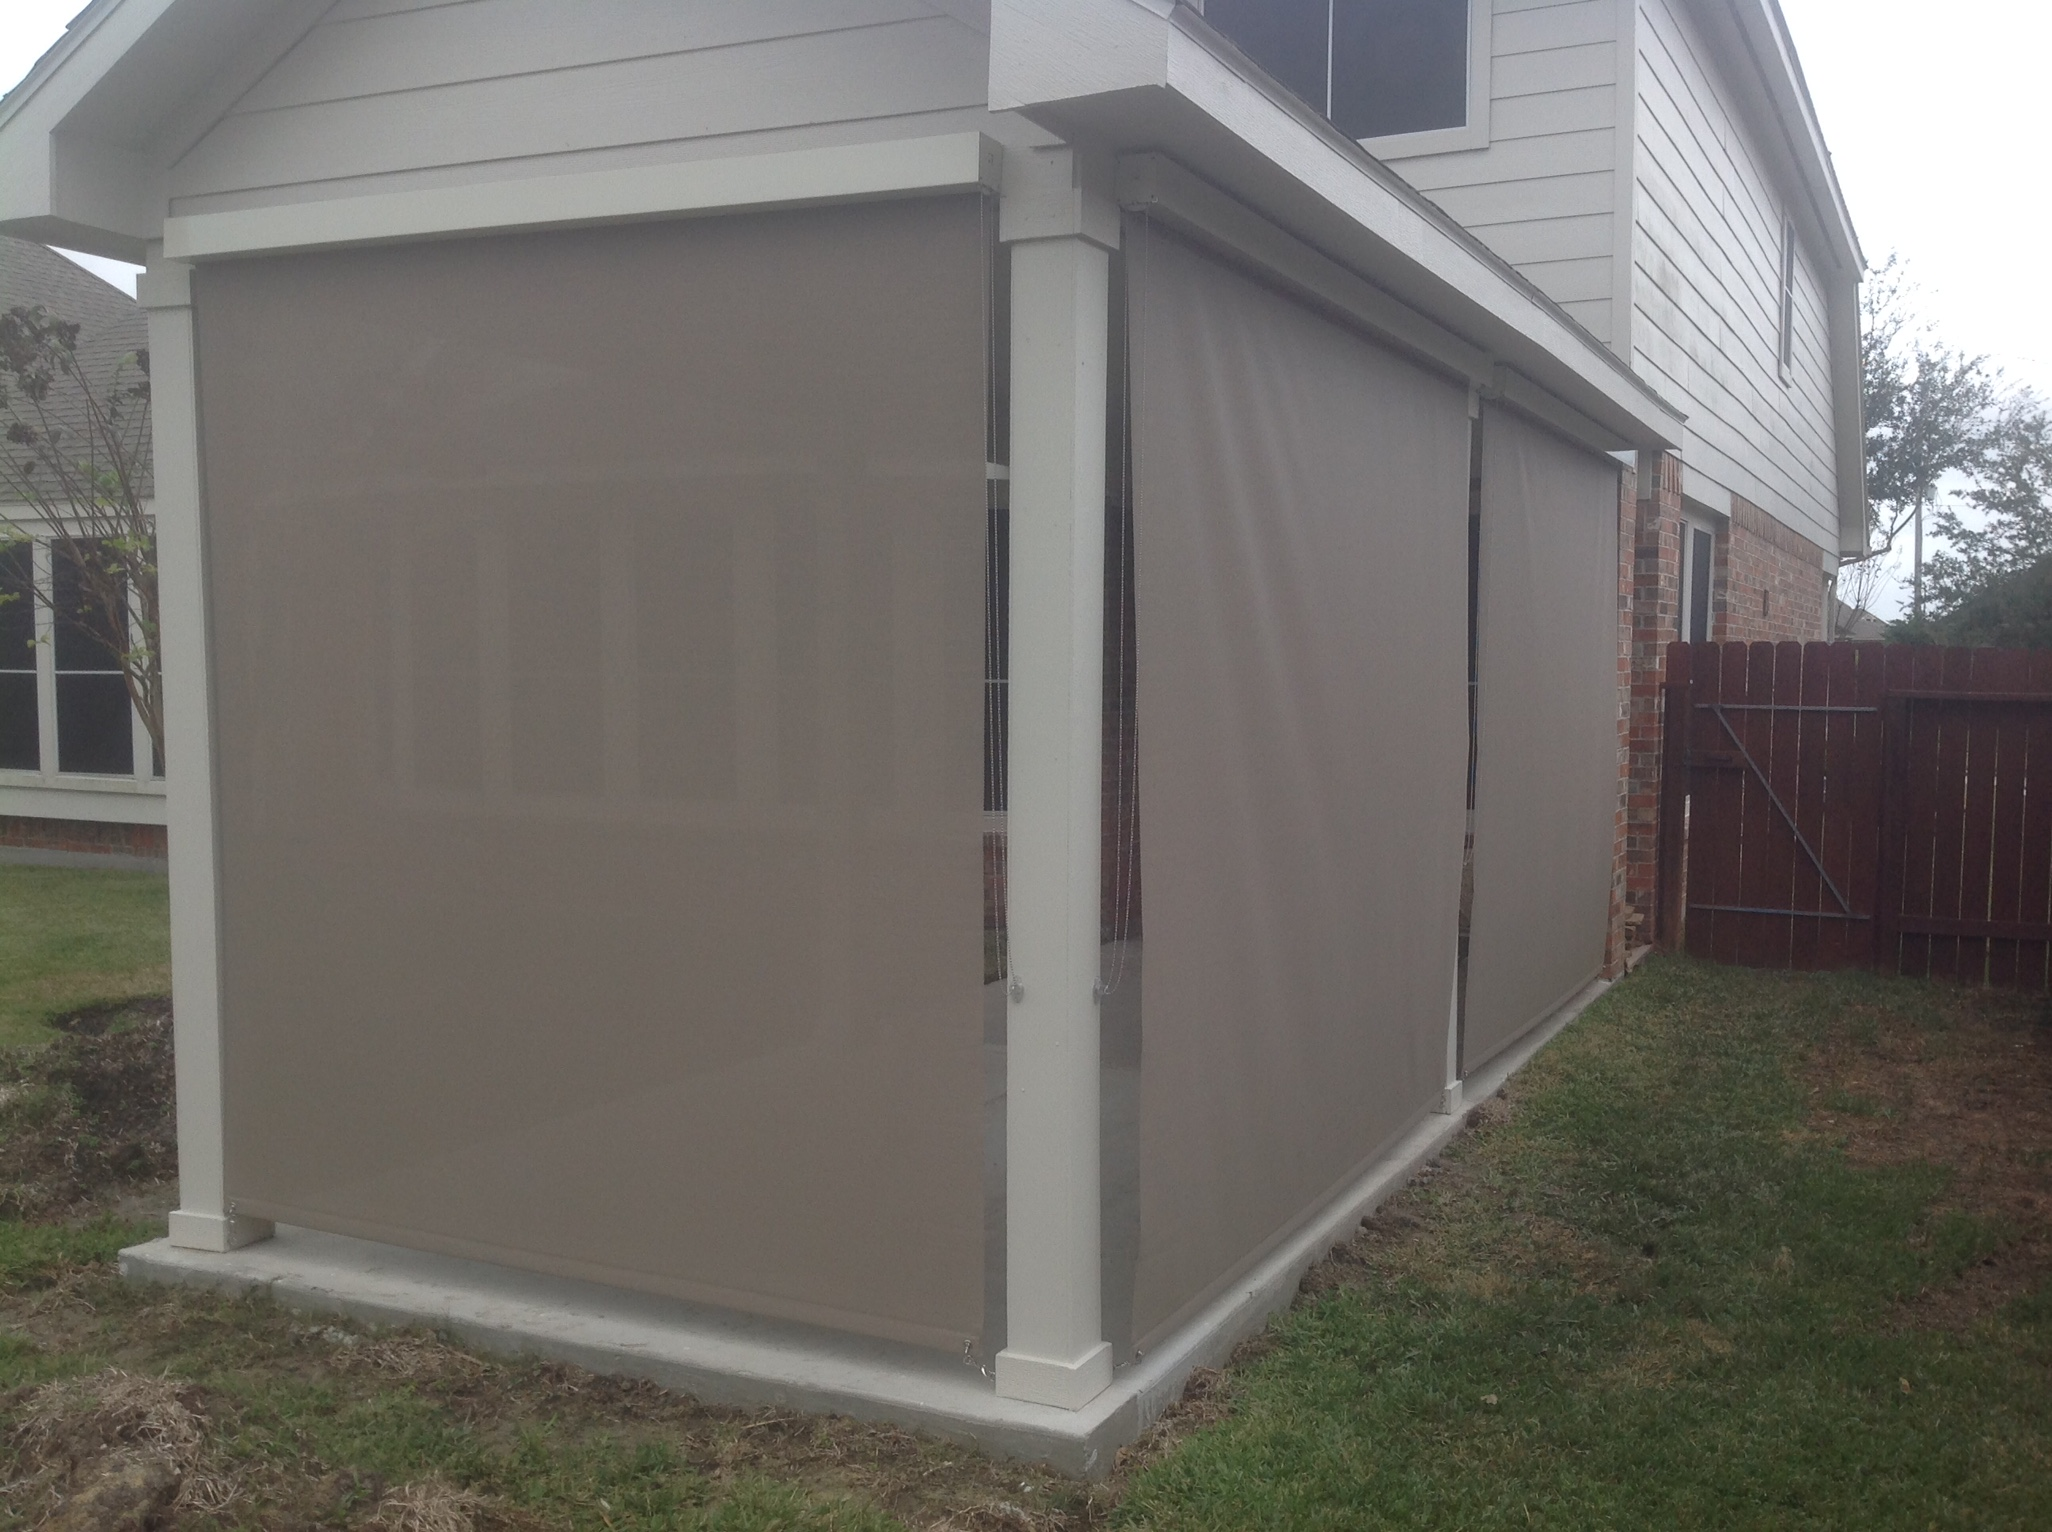 shade down roll for u patio lowes solar blinds sun patios screens covering materialrhpwahecorg screen rhpwahecorg sunshade window curtains with shades dazzling